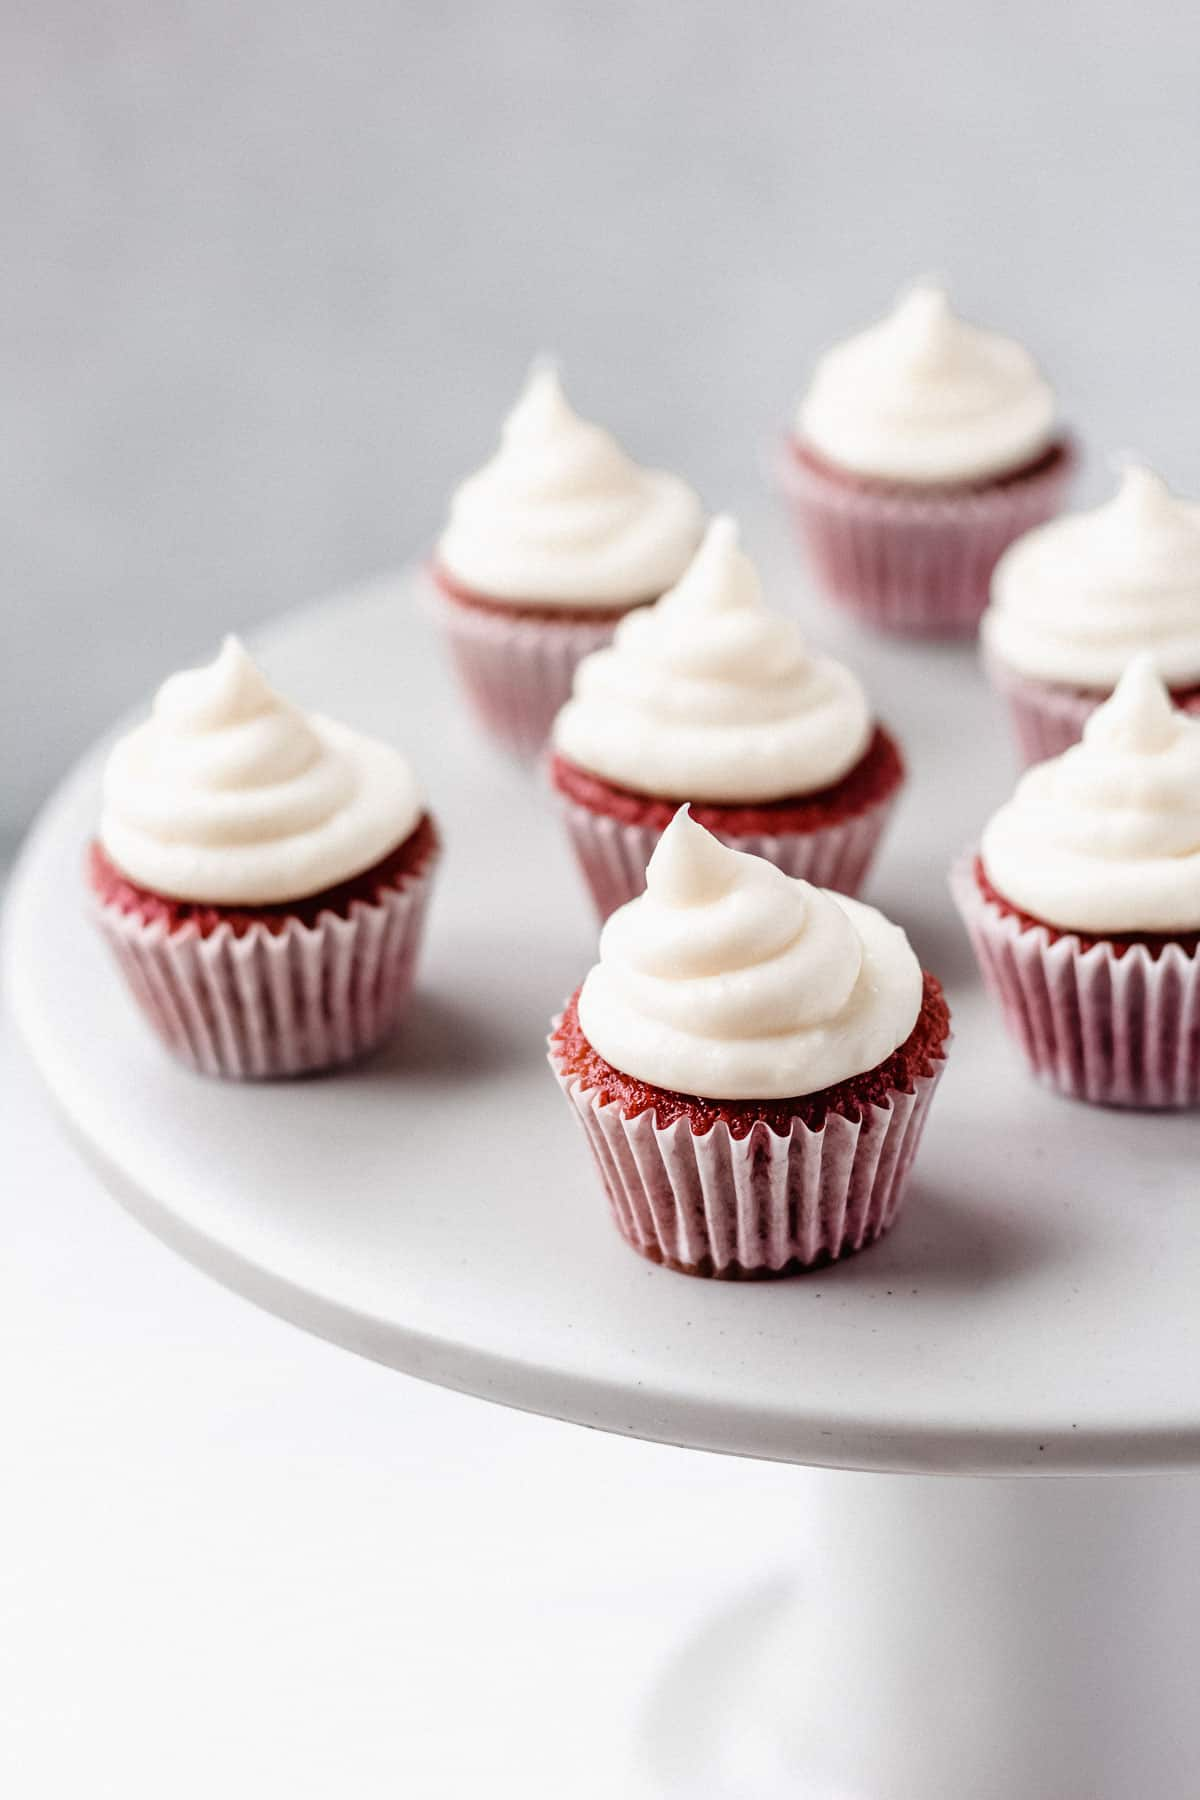 Mini red velvet cupcakes on a white cake stand with a gray and white background